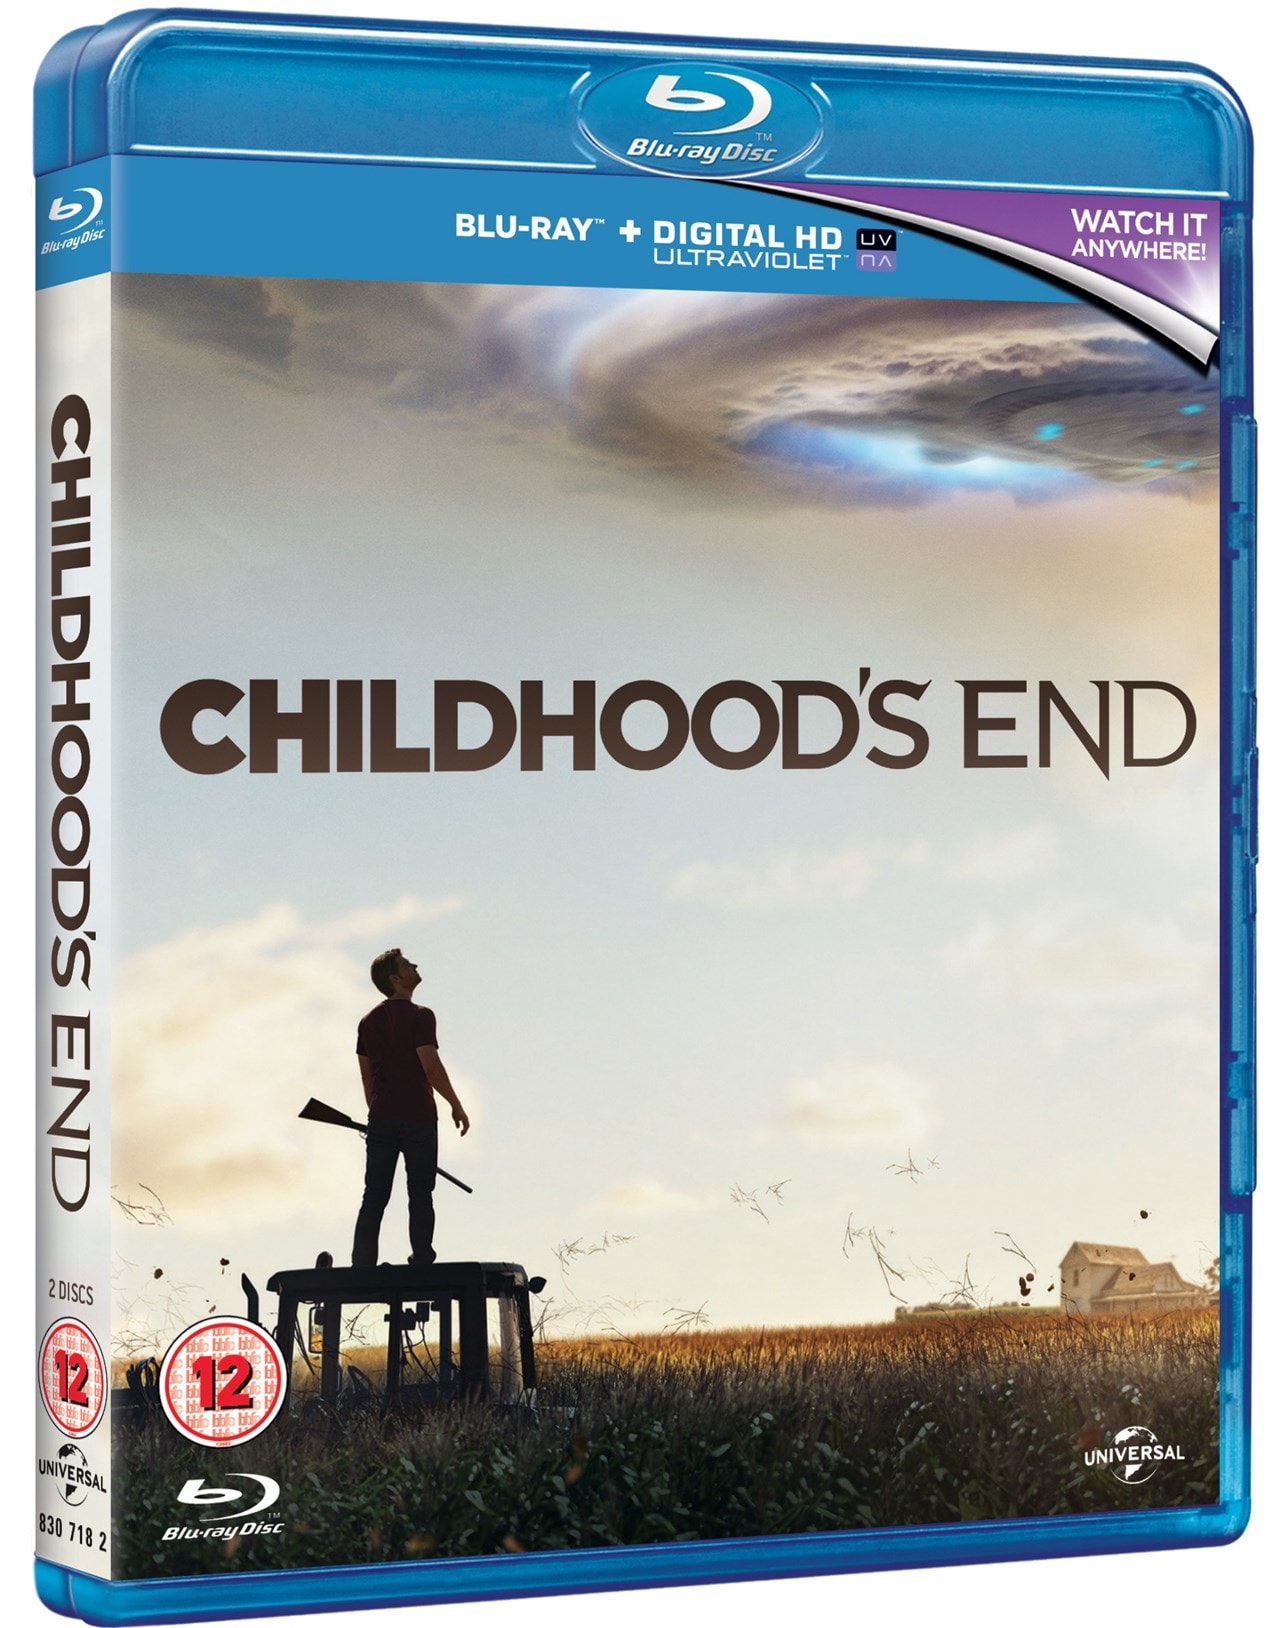 Childhood's End - 2